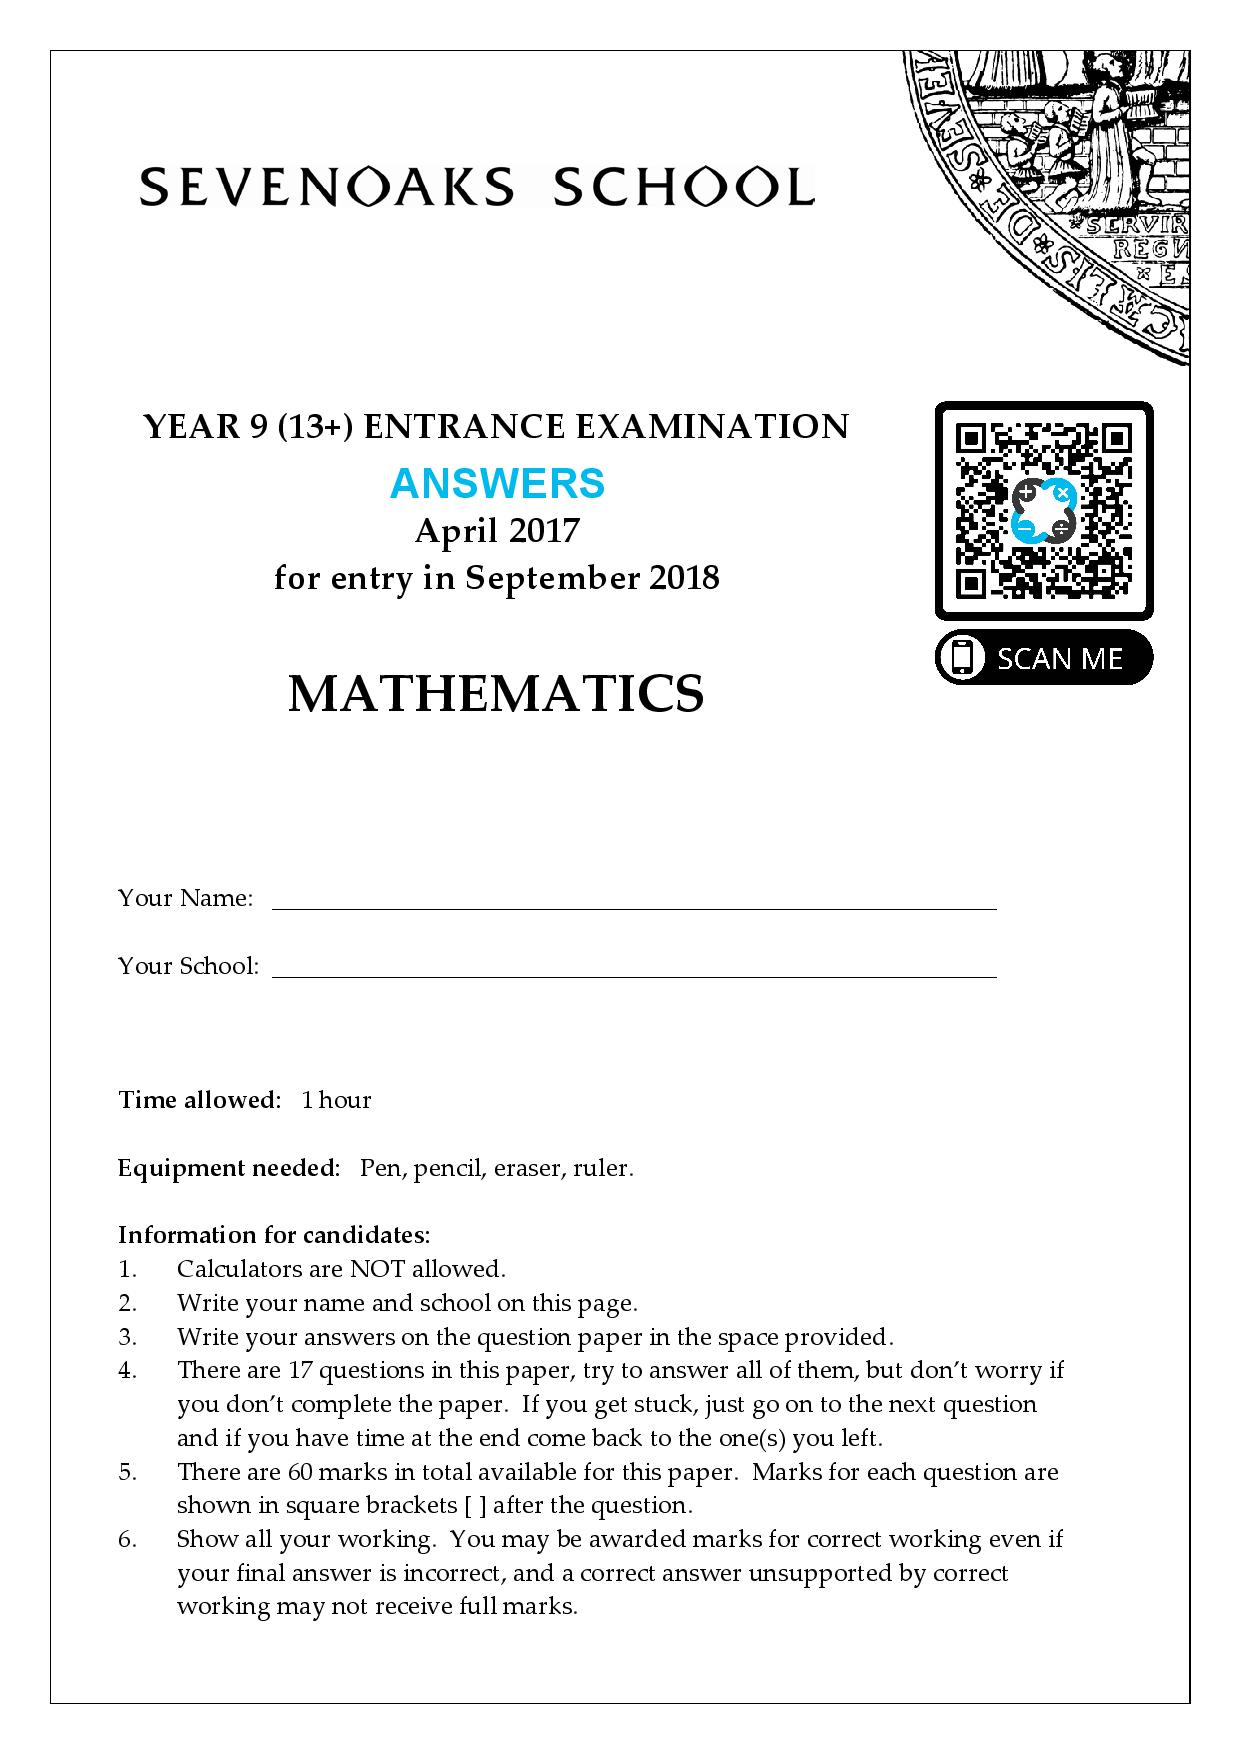 YEAR 9 13 ENTRANCE EXAMINATION 2017 Answer Paper page 001